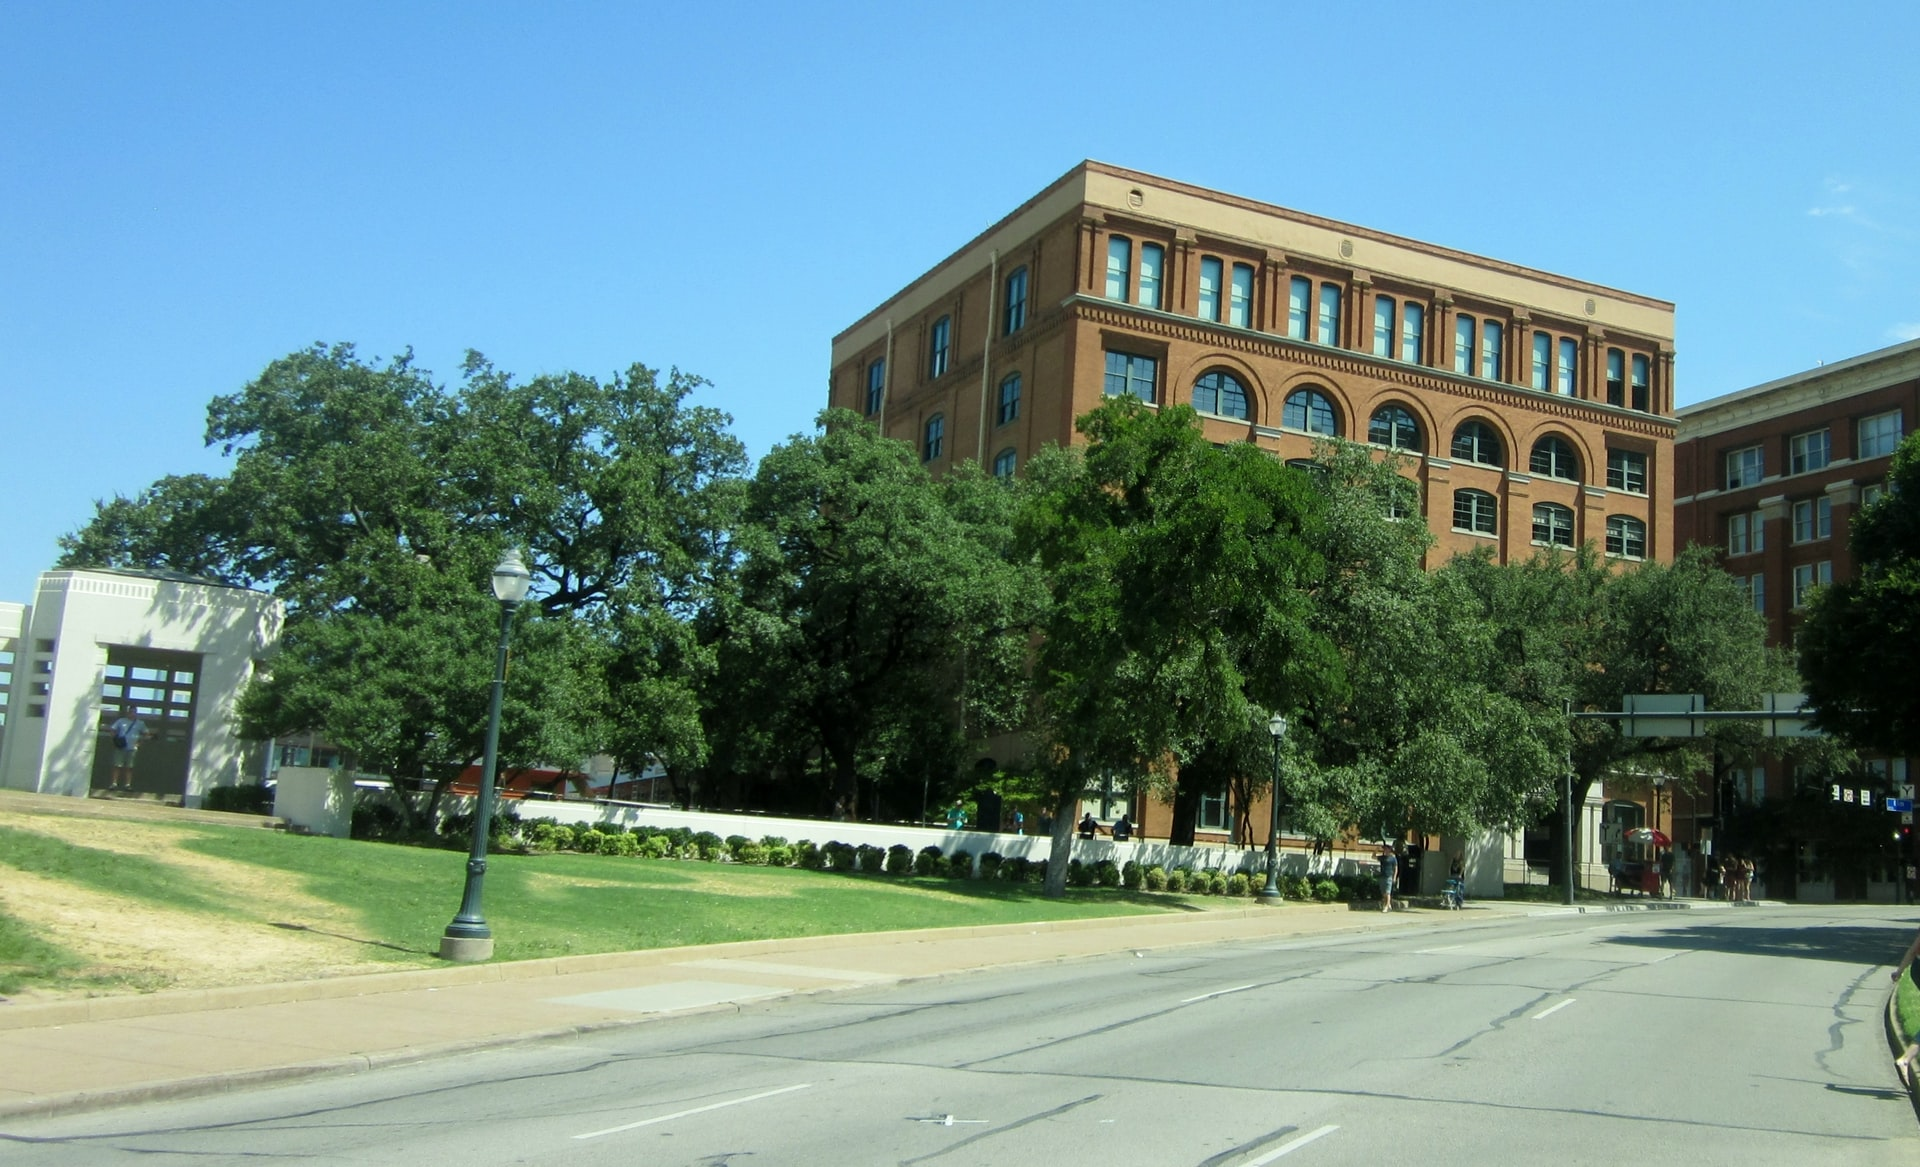 Dealey Plaza view of Sixth Floor Museum Building in Dallas